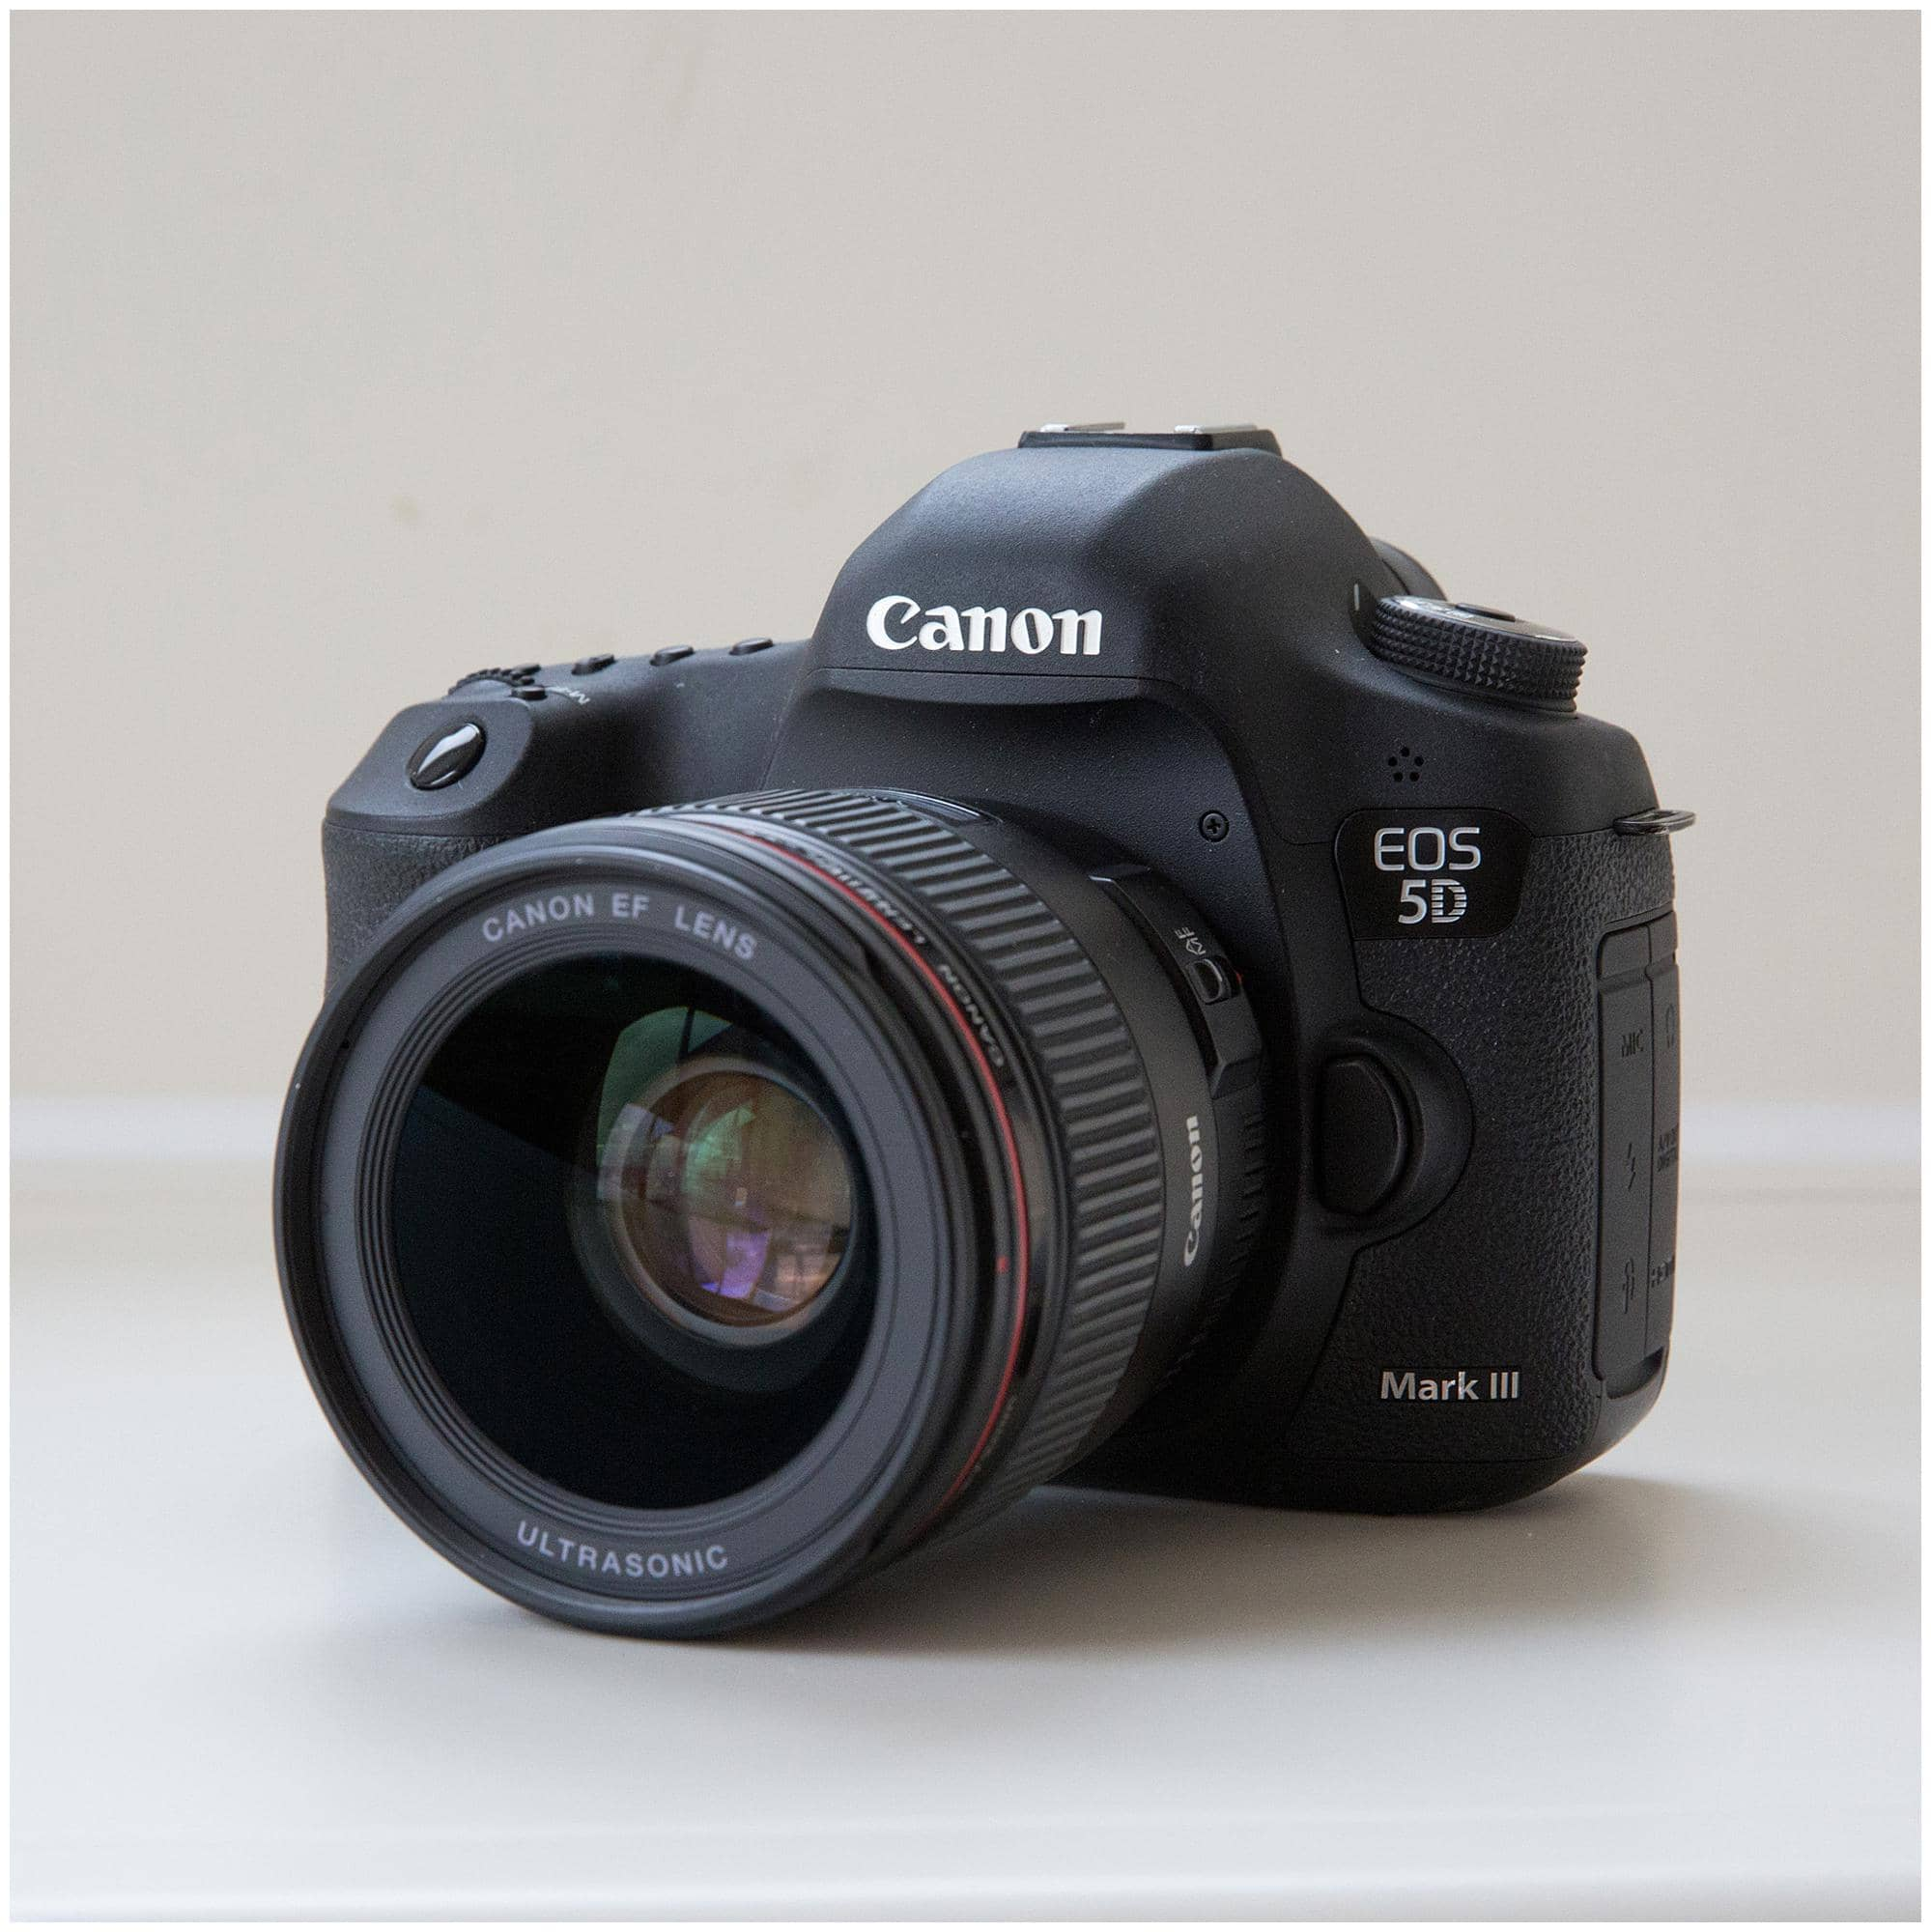 Canon 5D mark iii Camera on a white background